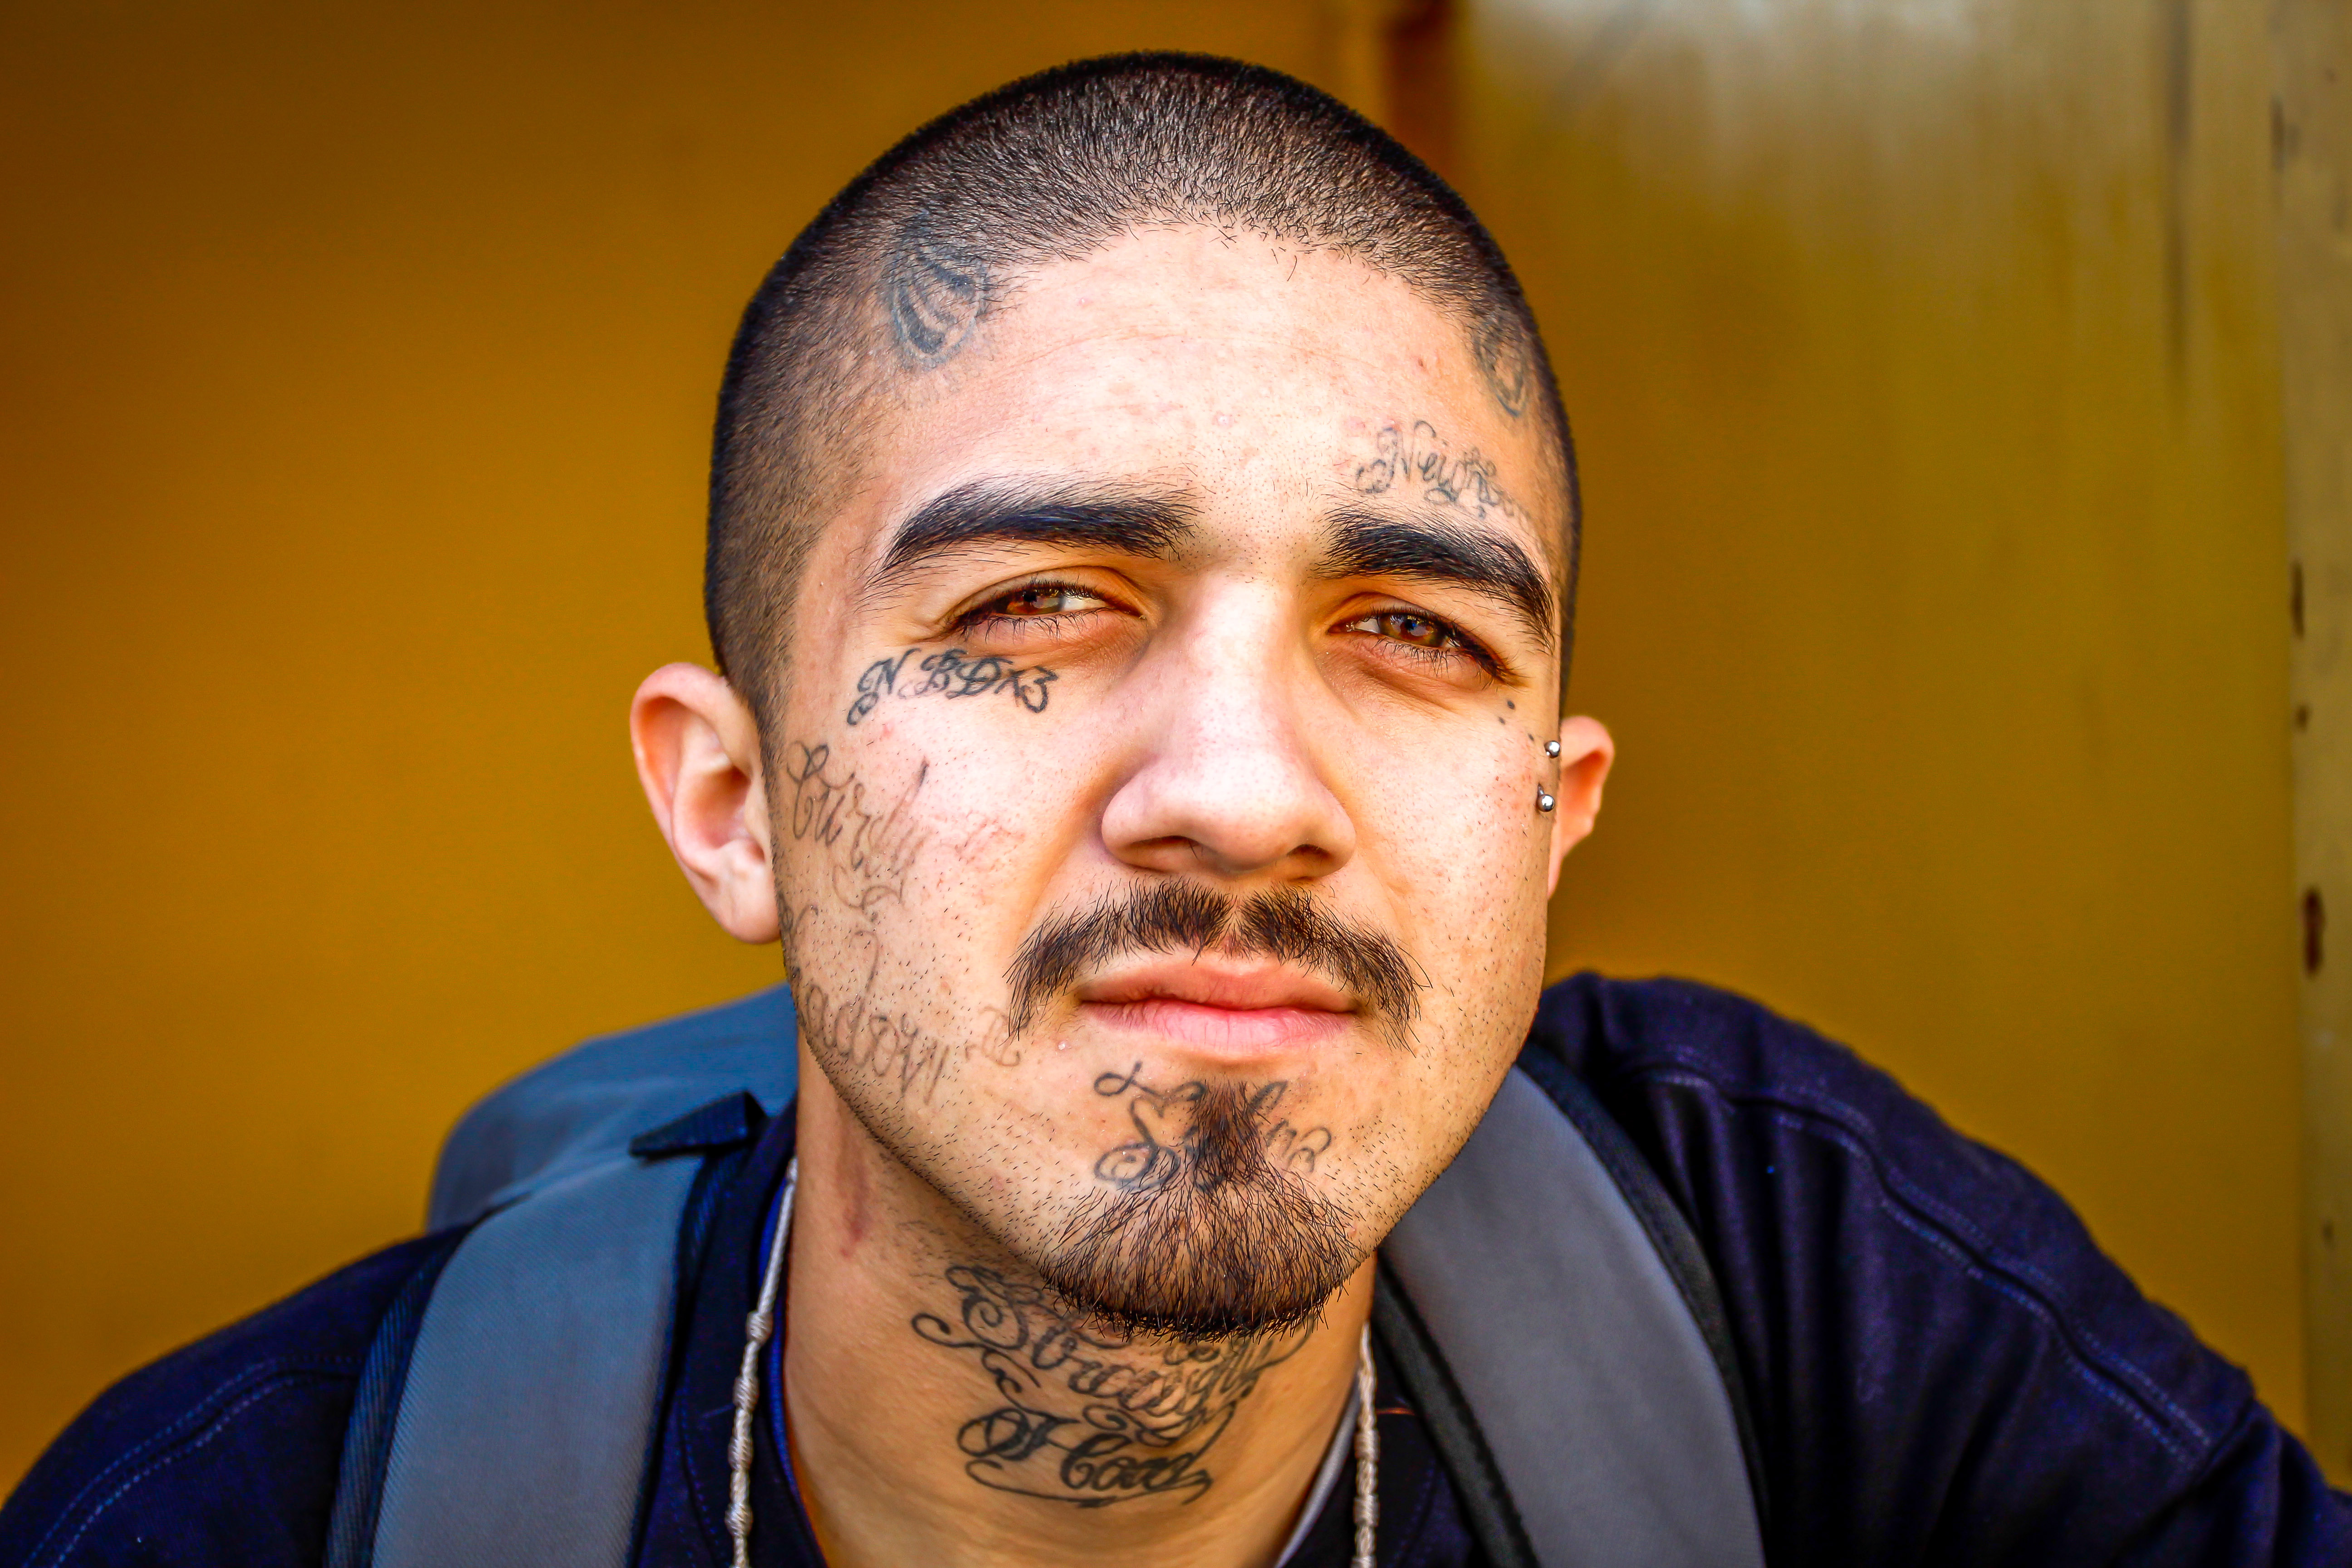 research paper on gang violence Essays - largest database of quality sample essays and research papers on gang violence research paper.